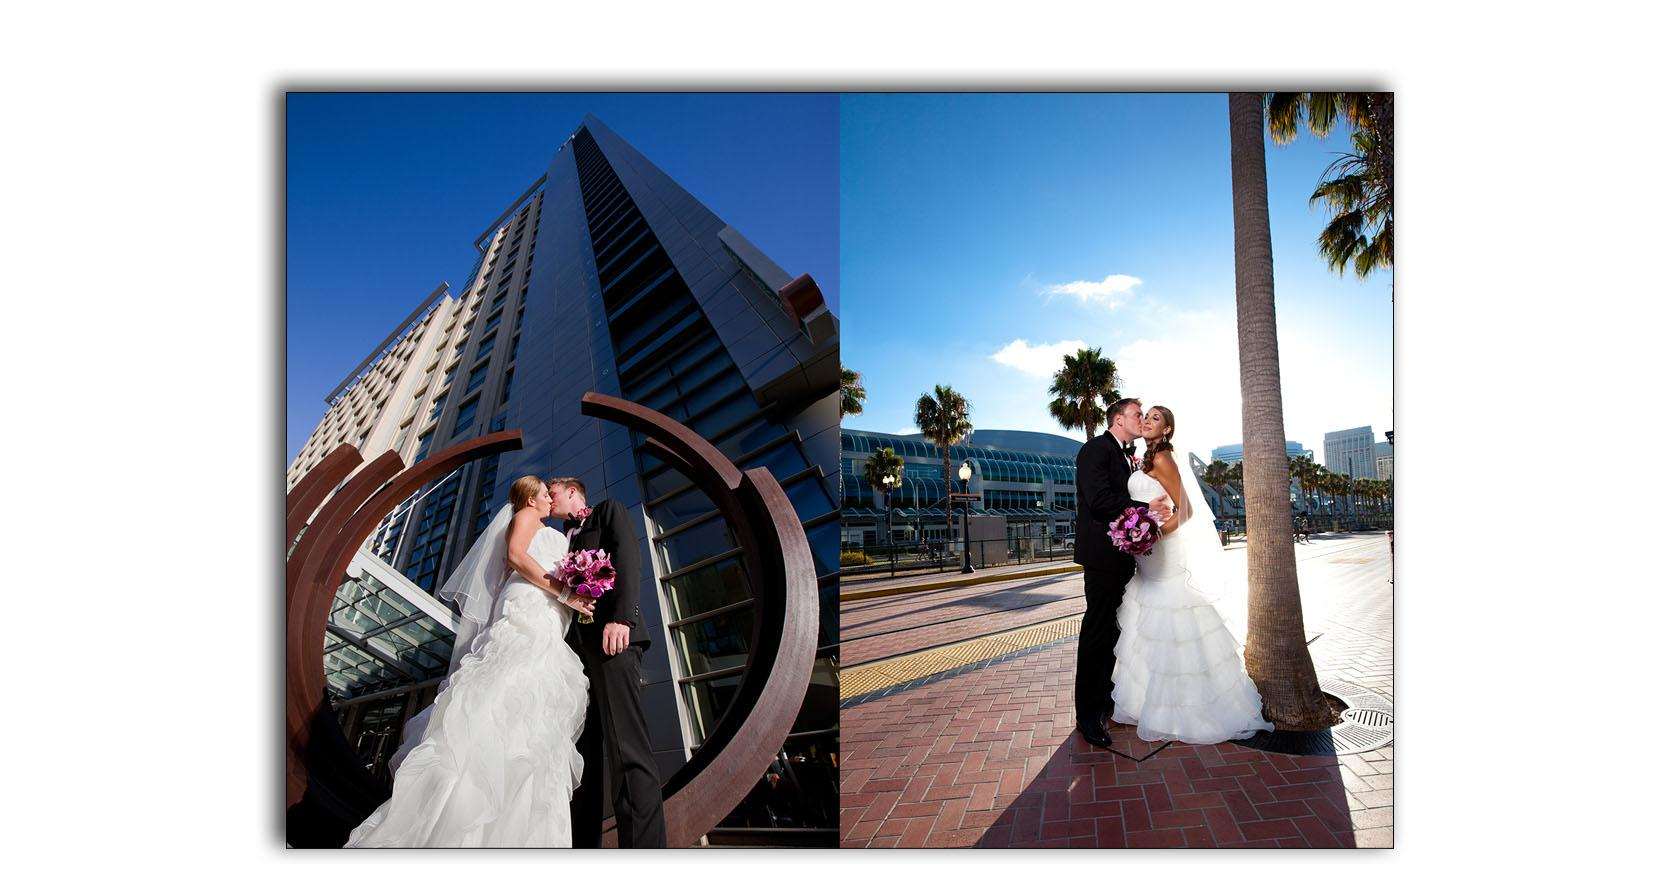 San Diego Hard Rock wedding photo album 03